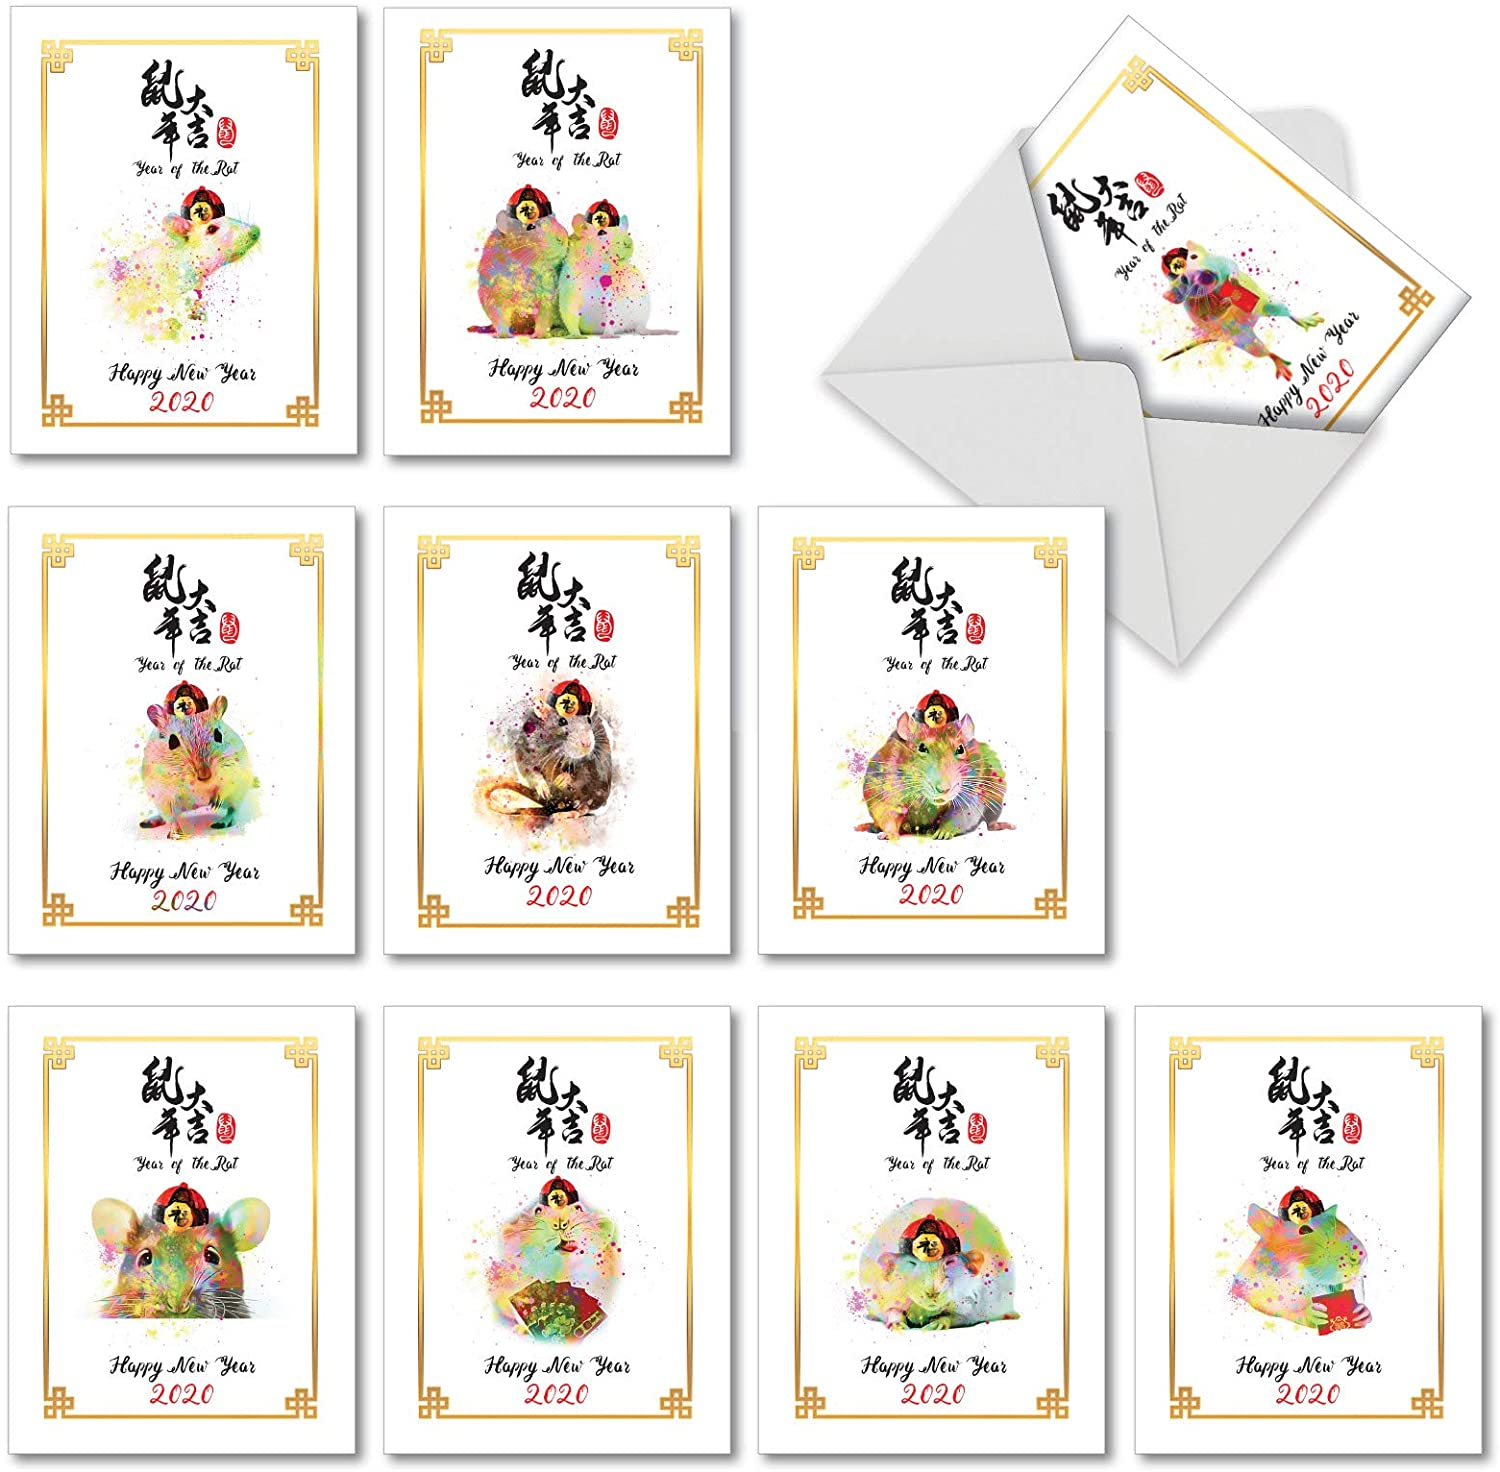 Year of the Rat 2020 - 10 Boxed Chinese New Year Cards with Envelopes (4 x 5.12 Inch) - 2020 New Years Note Cards - Cute Rat Watercolor Painted Artwork AM7107CNG-B1x10-19